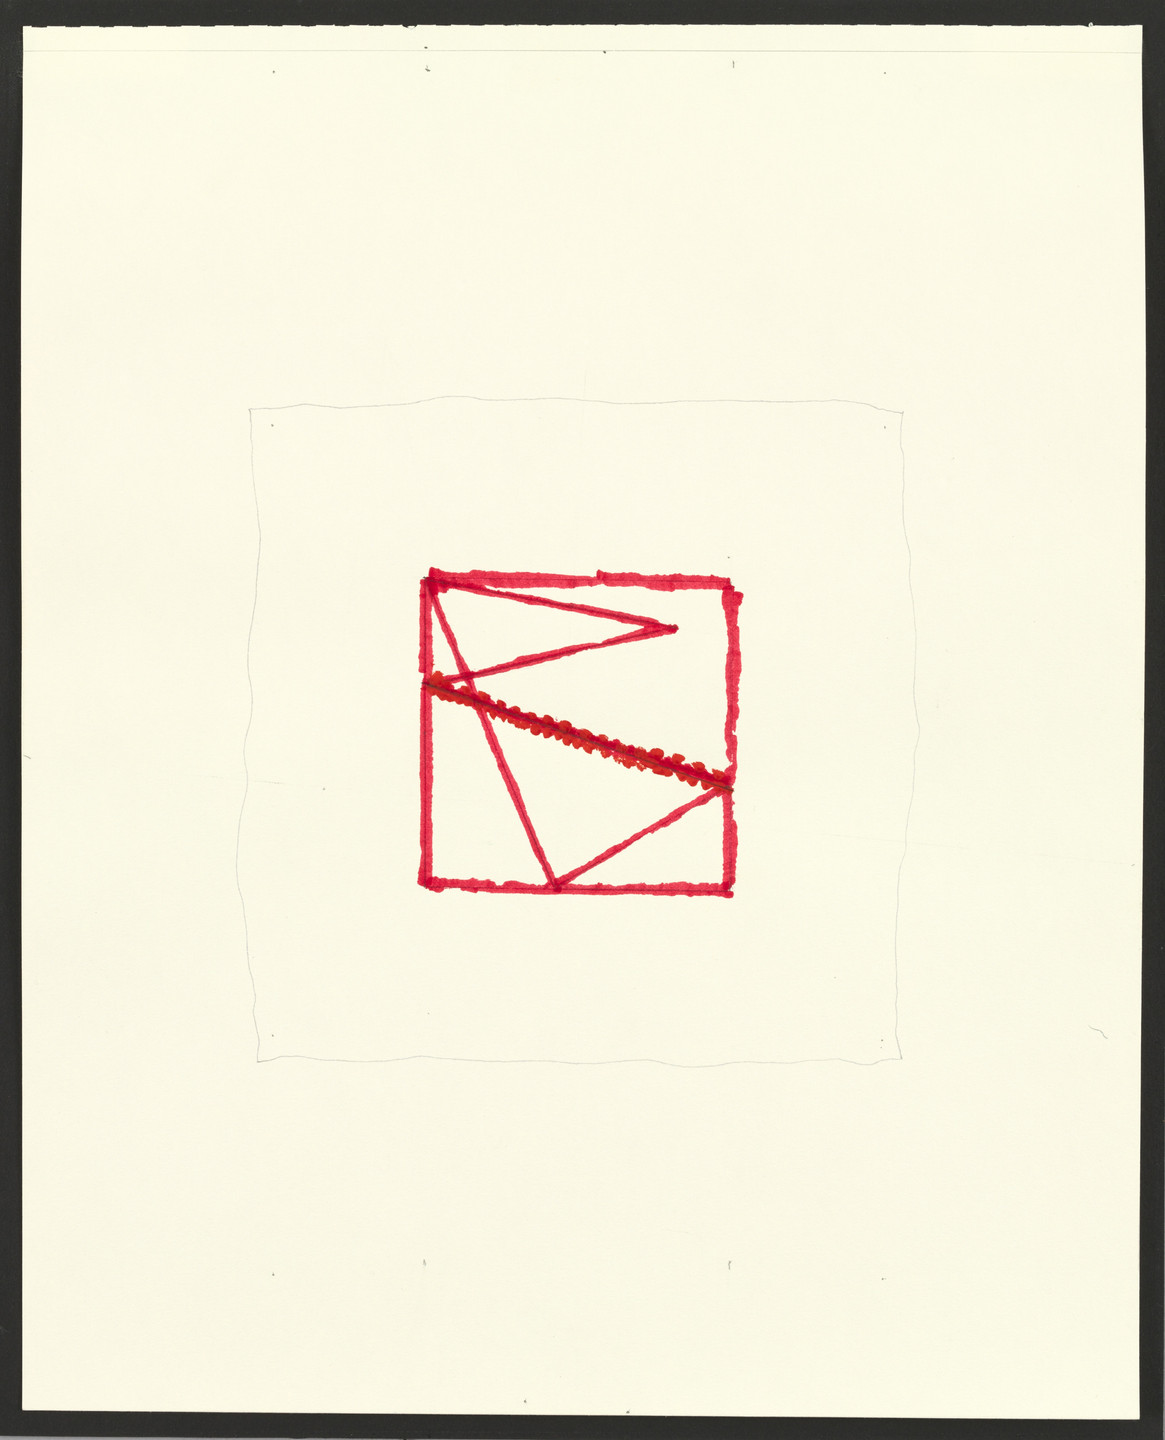 Richard Tuttle. Blue/Red, Phase: Drawings #4. (2002)